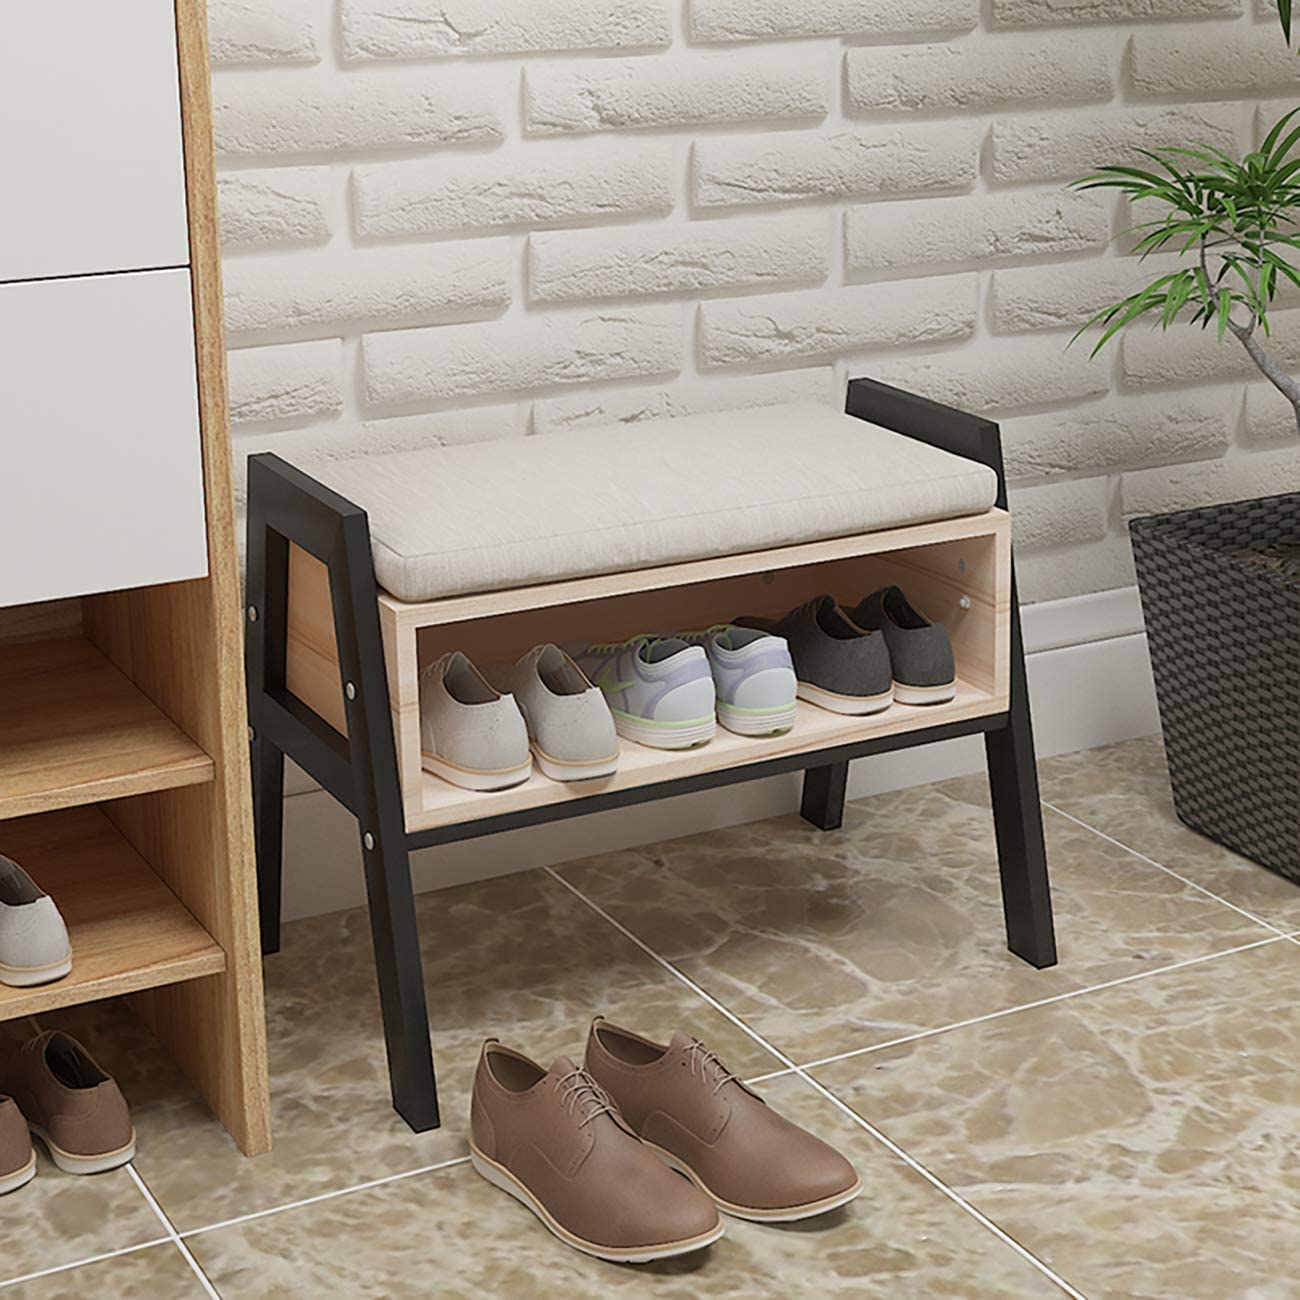 71c6JovYpL. AC SL1300  - 20 clever shoe storage ideas for clutter-free living